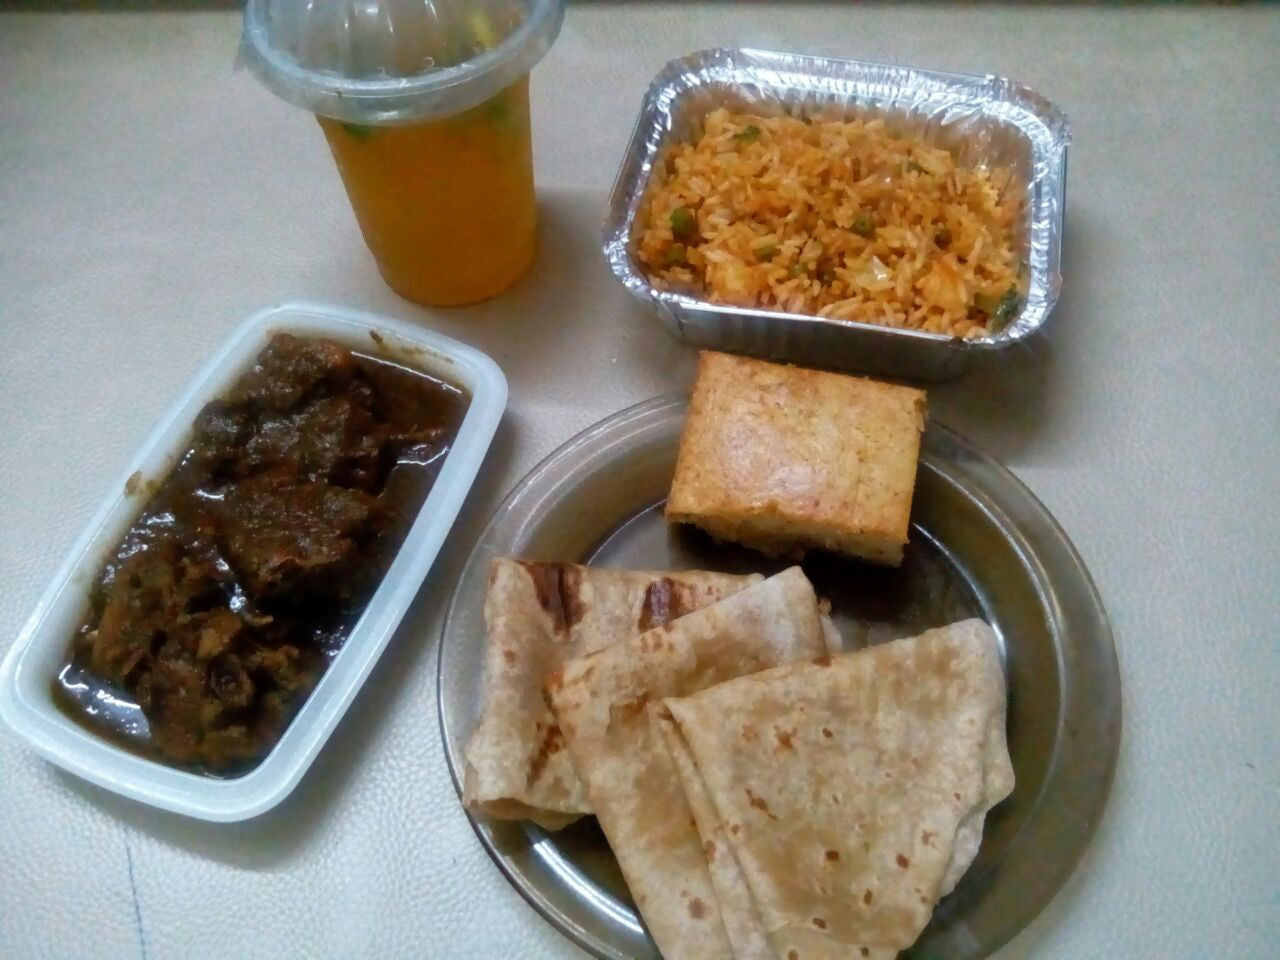 Black Chicken with Chapattis and Veg Fried rice and Banana Walnut Cake with Mint Iced tea